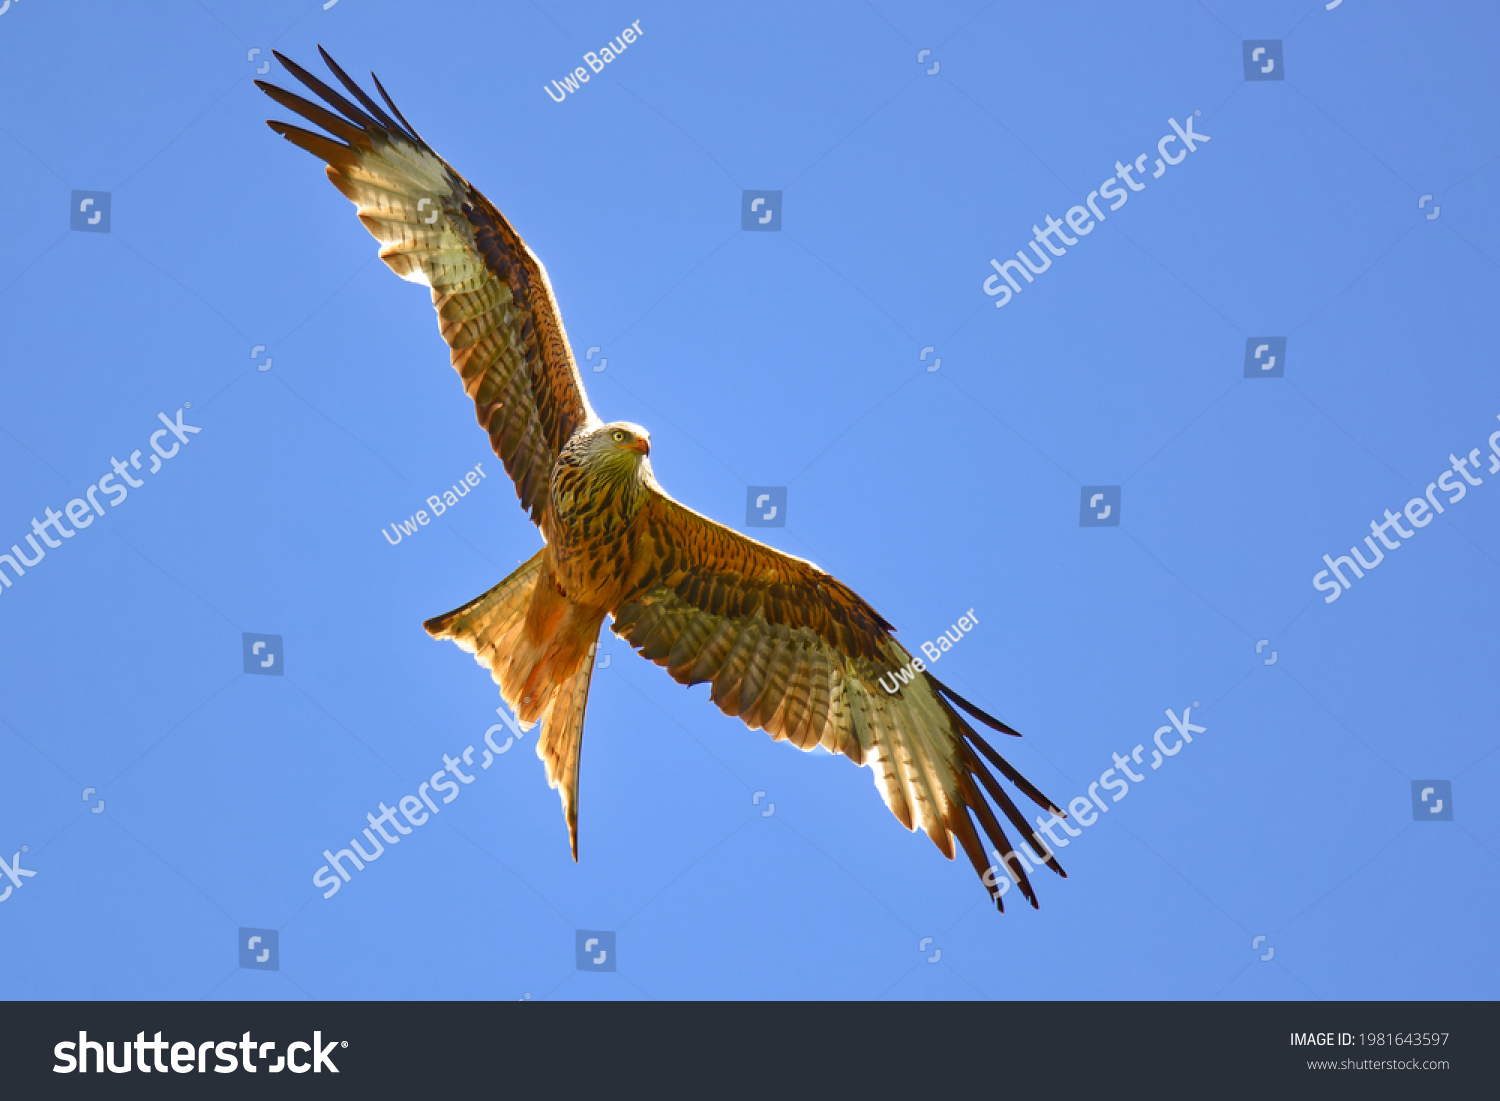 stock-photo-flying-red-kite-in-the-clear